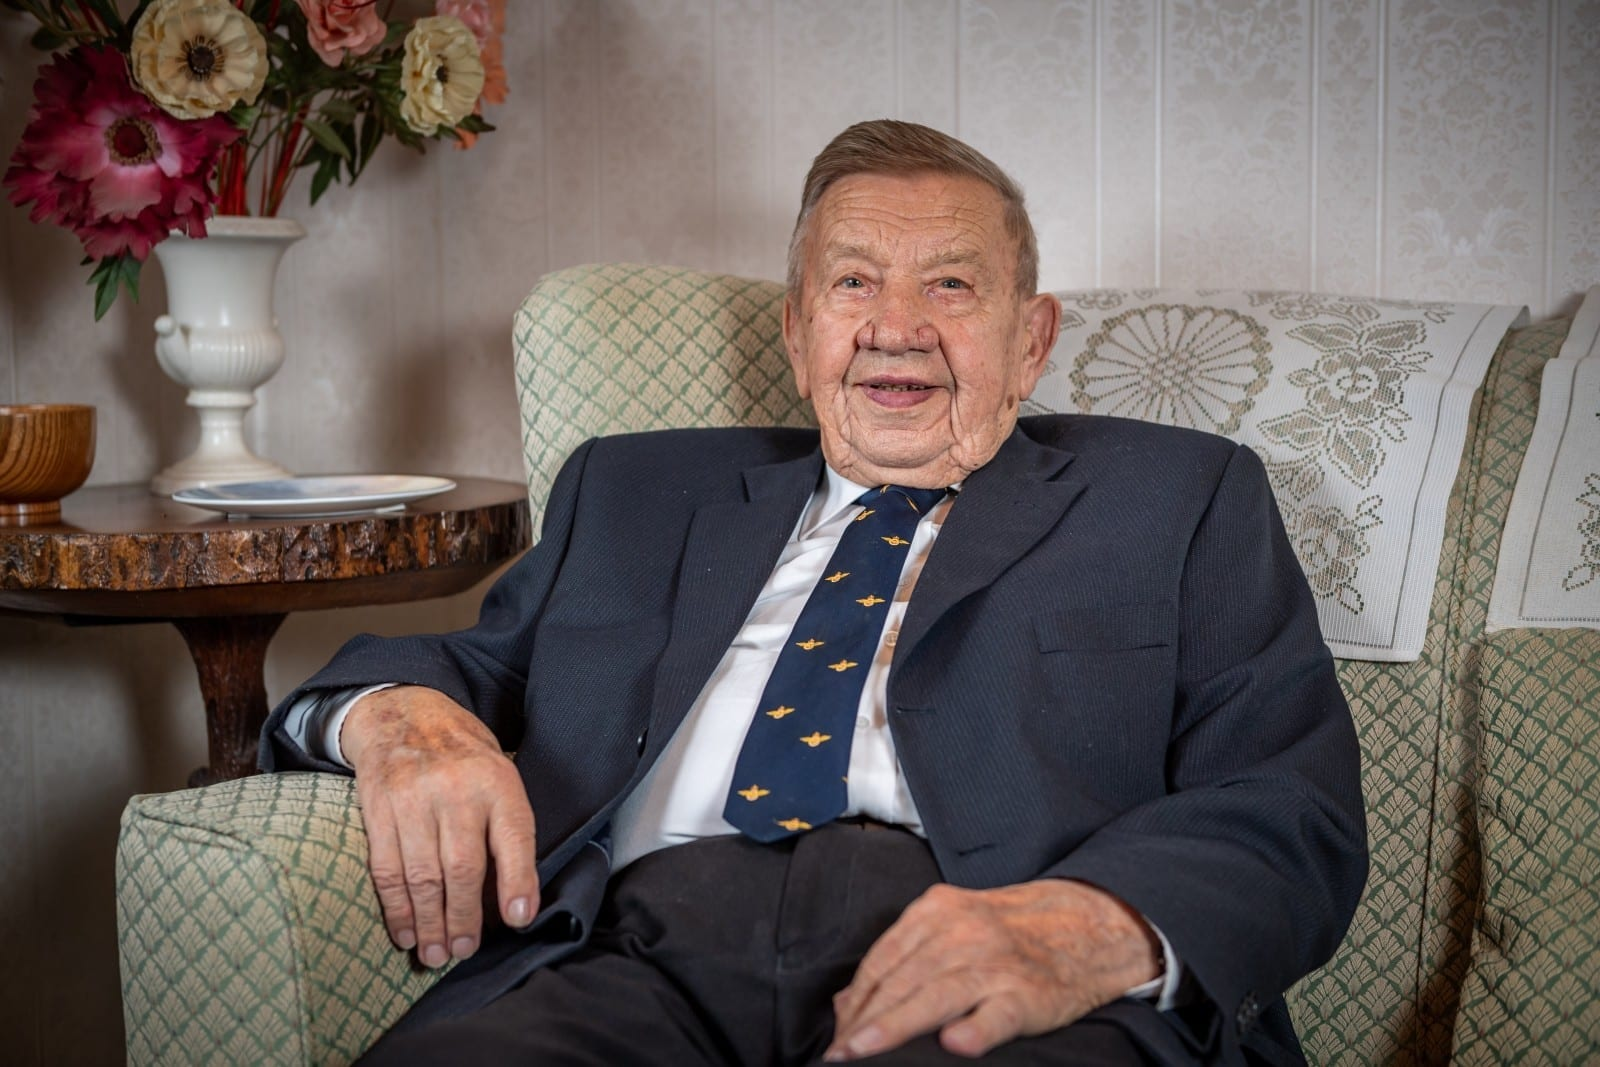 A Man Who Lost All His Documents In The War And Thought He Was 98 Is Celebrating - After Discovering He's 100 This Year